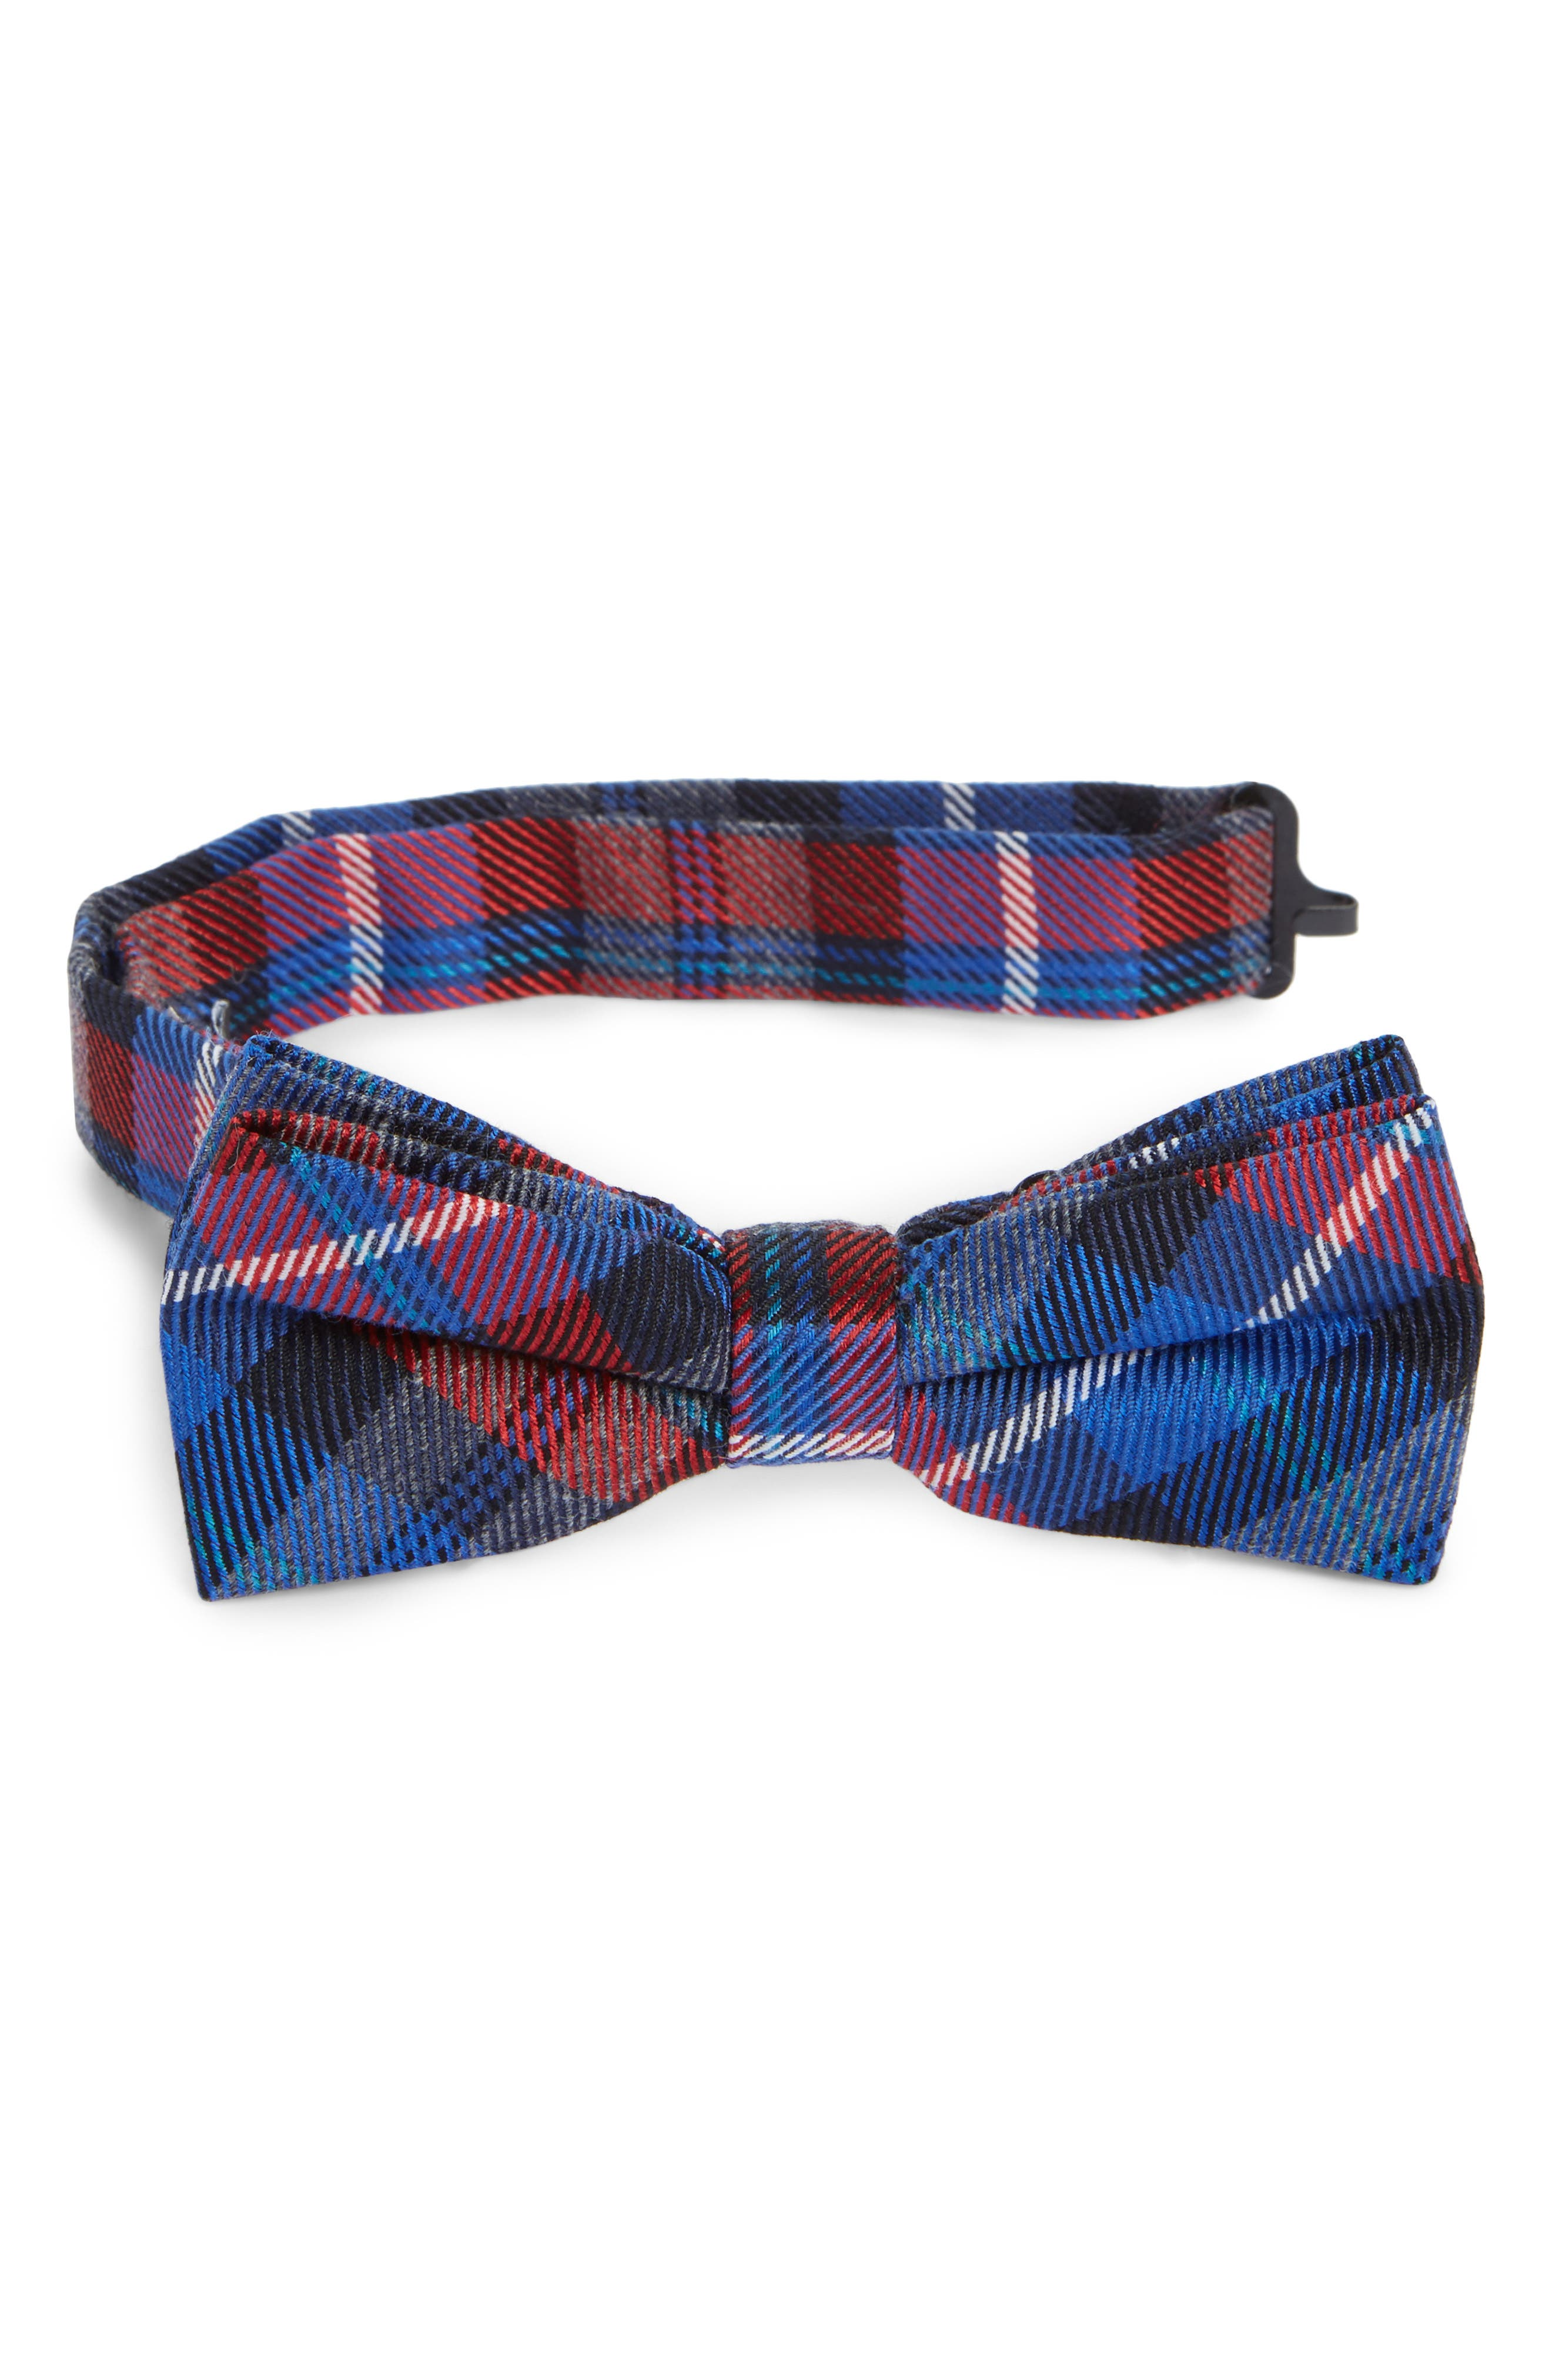 Plaid Bow Tie,                         Main,                         color, Red